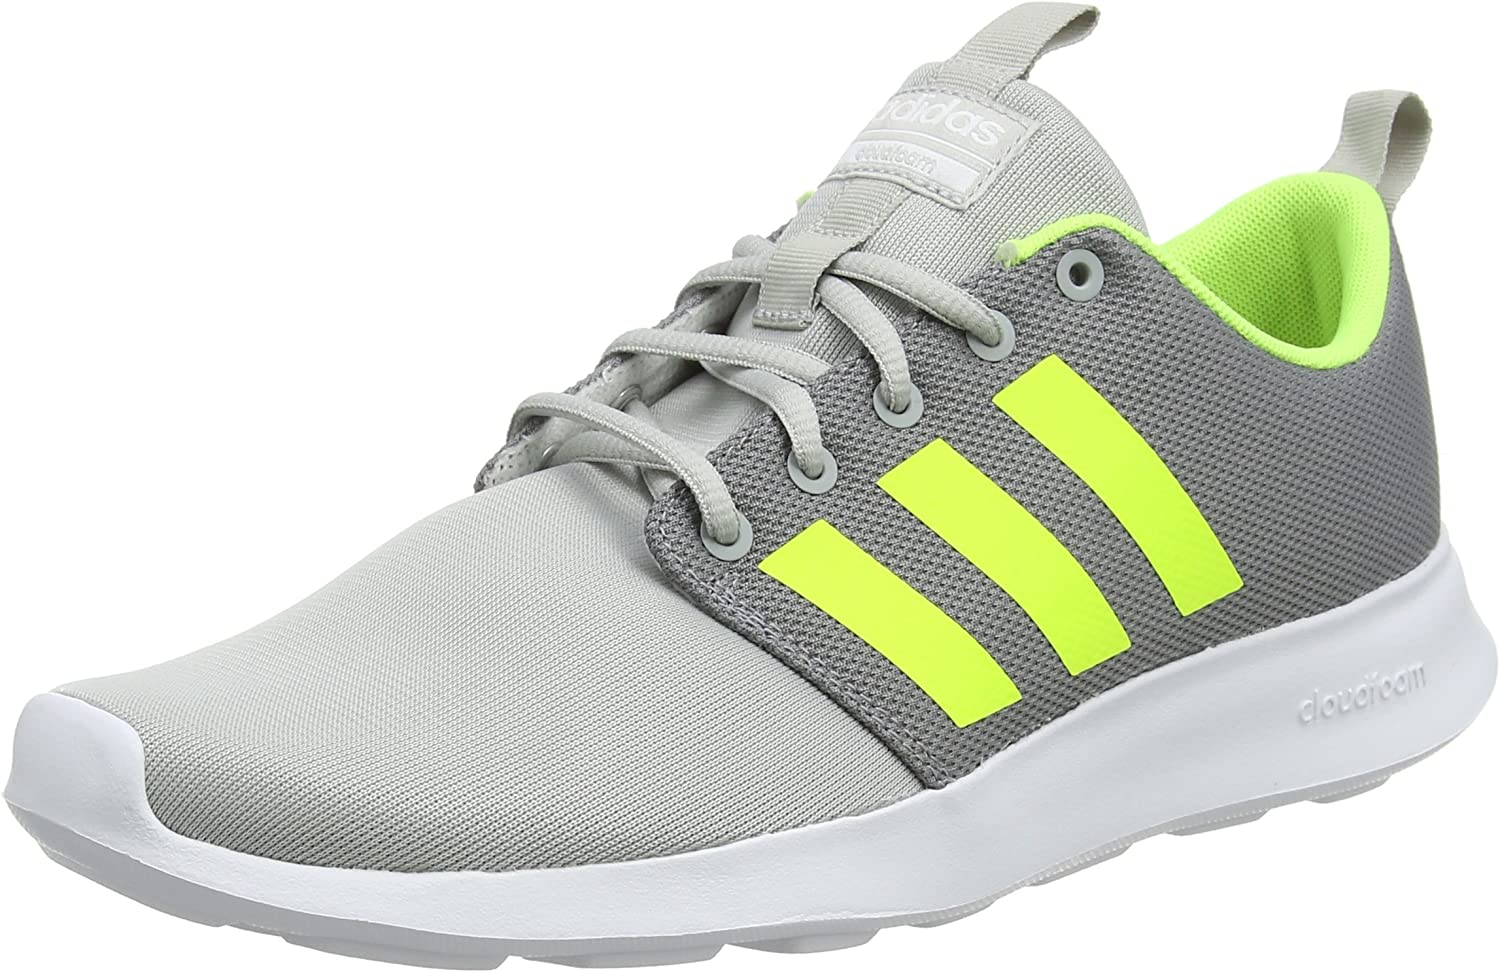 adidas CF Swift Racer, Zapatillas de Entrenamiento para Hombre, Gris (Grey Two/Solar Yellow/Footwear White 0), 44 2/3 EU: Amazon.es: Zapatos y complementos